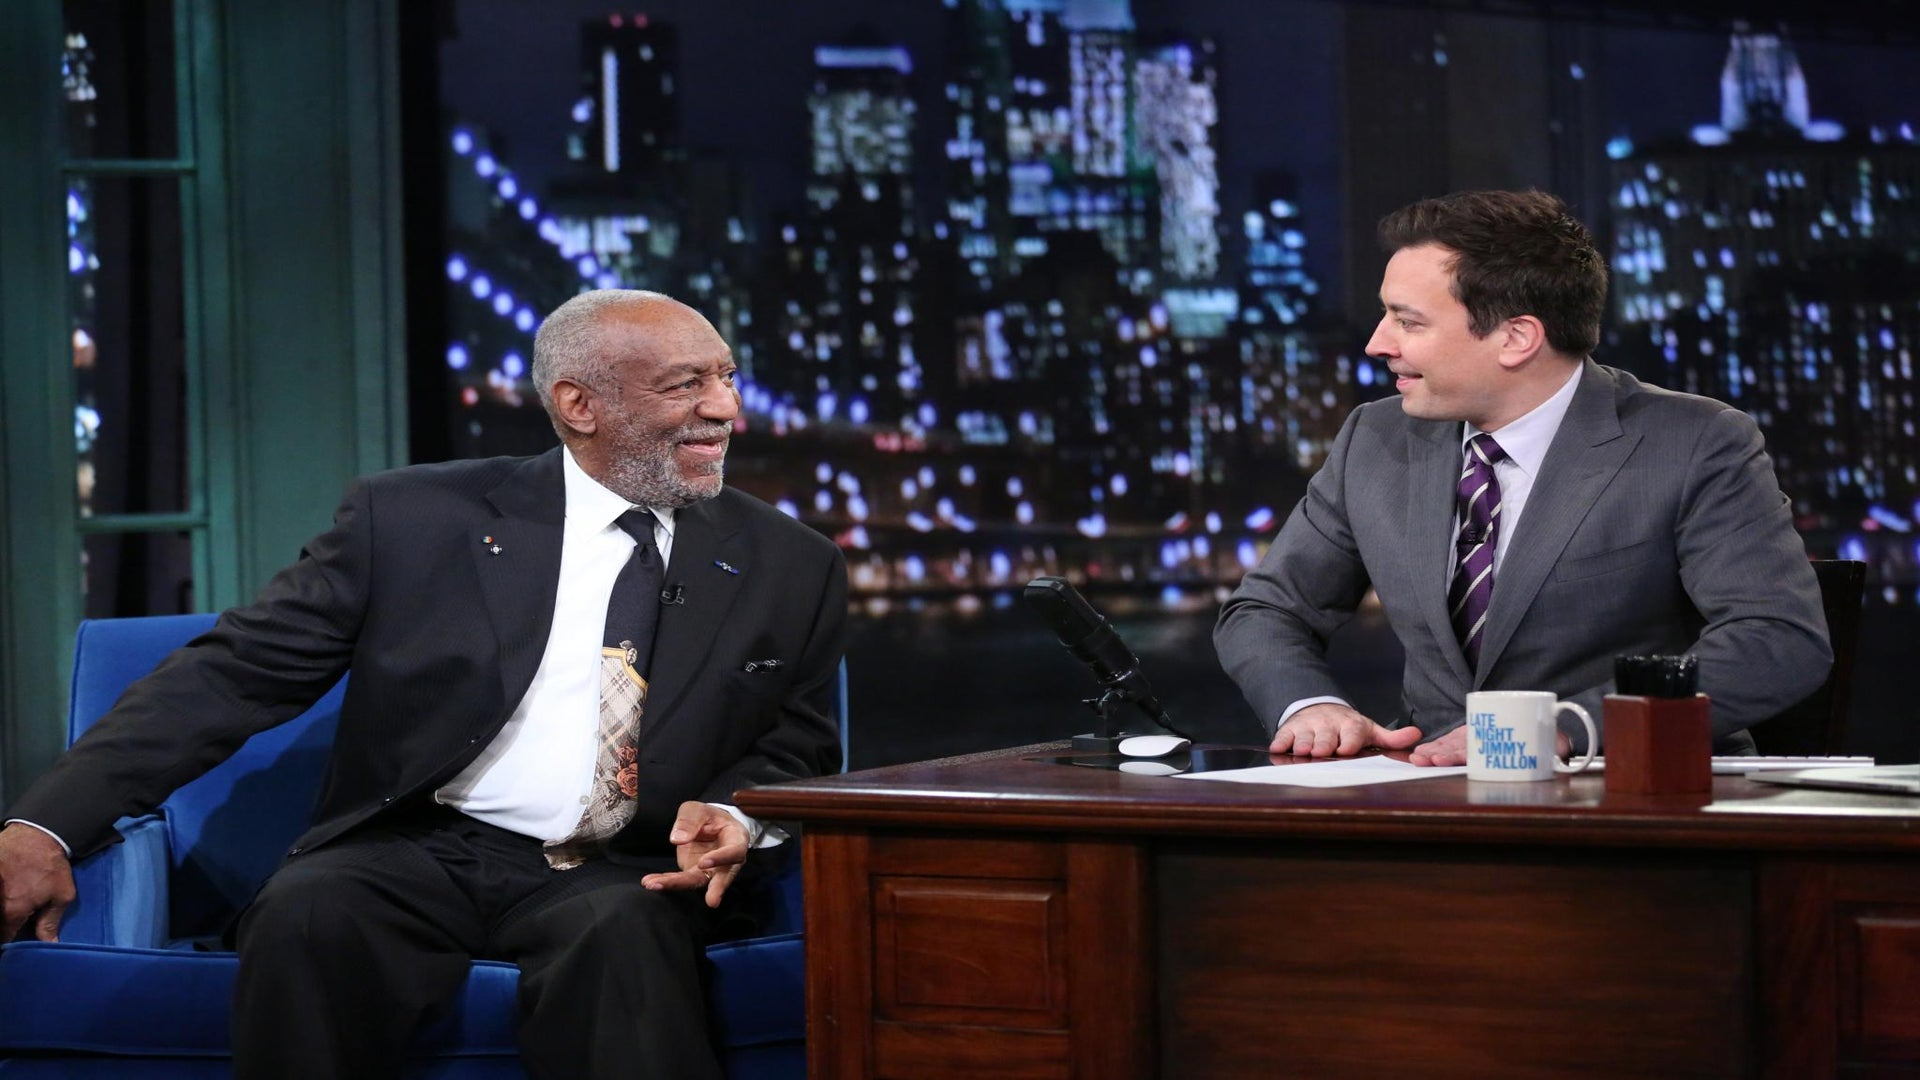 Must-See: Bill Cosby Holds Mock Funeral on 'Fallon'